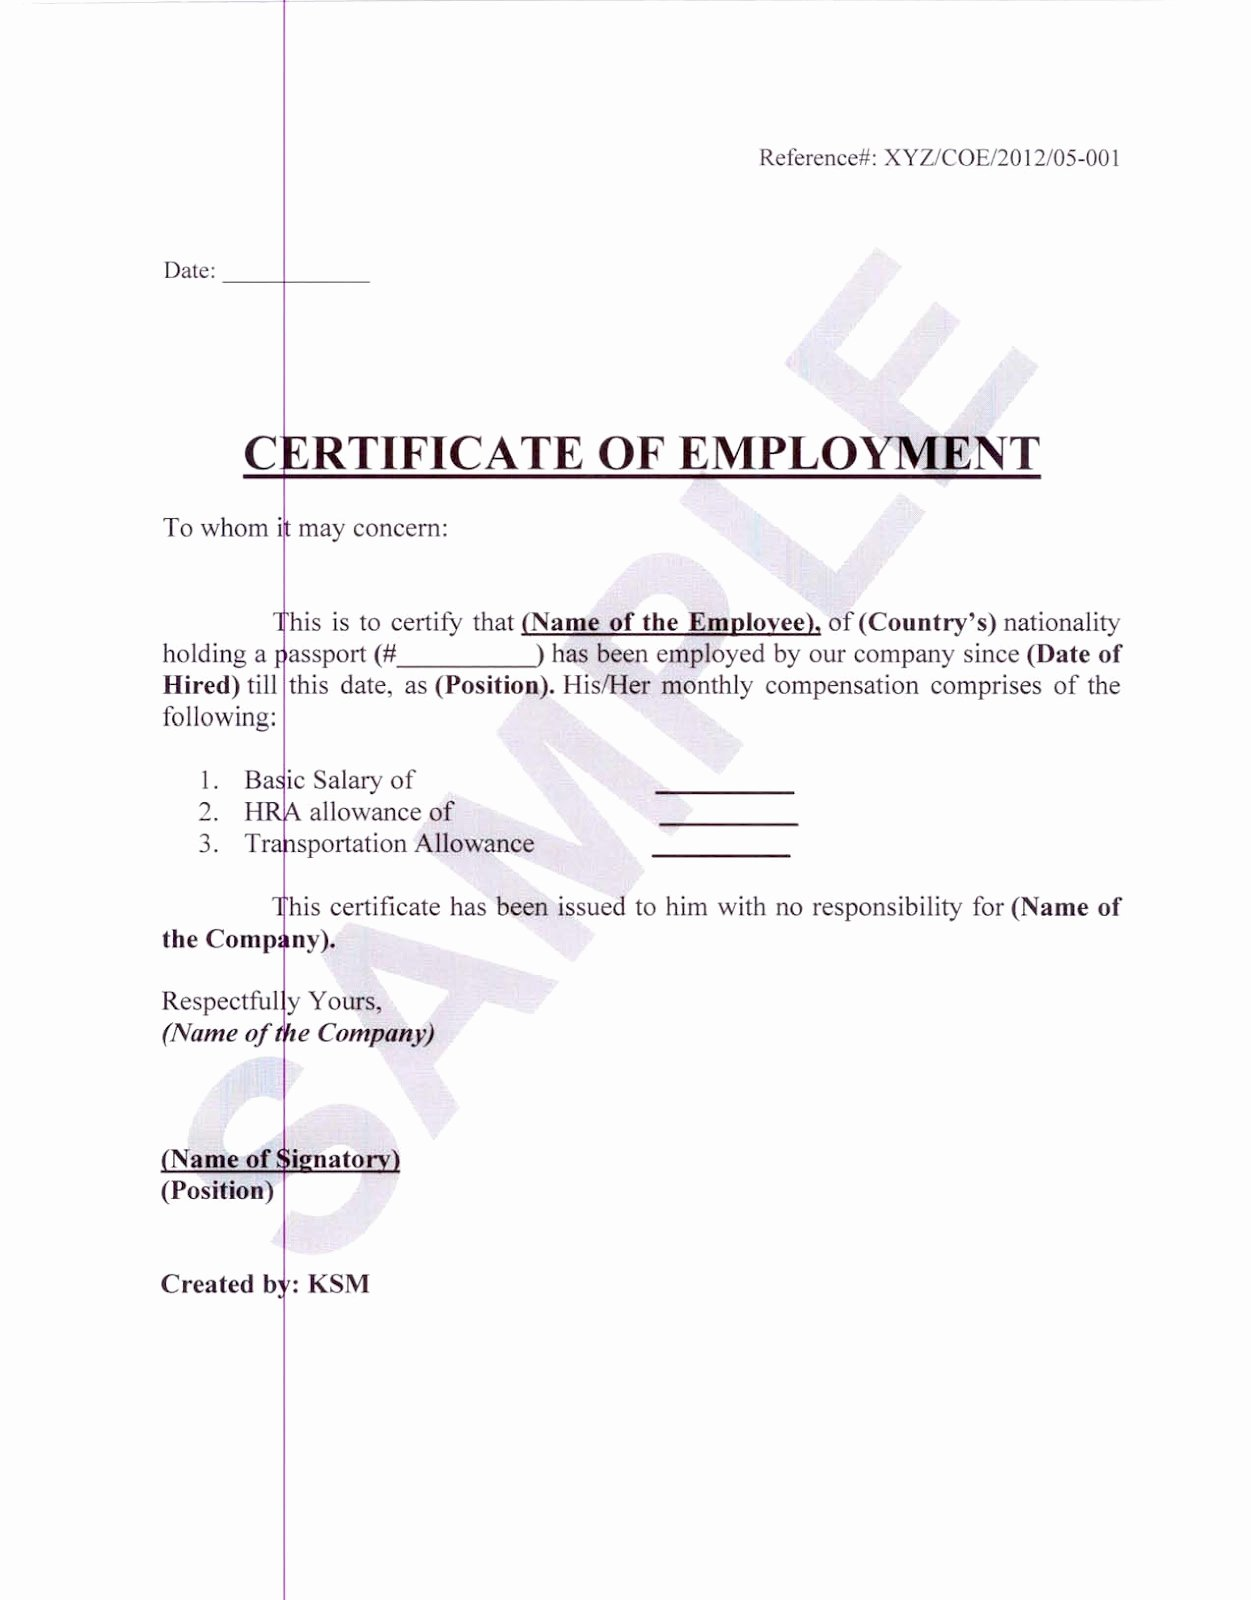 Sample Of Certificate Of Employment Best Of Money Business People Travel and Pleasure Certificate